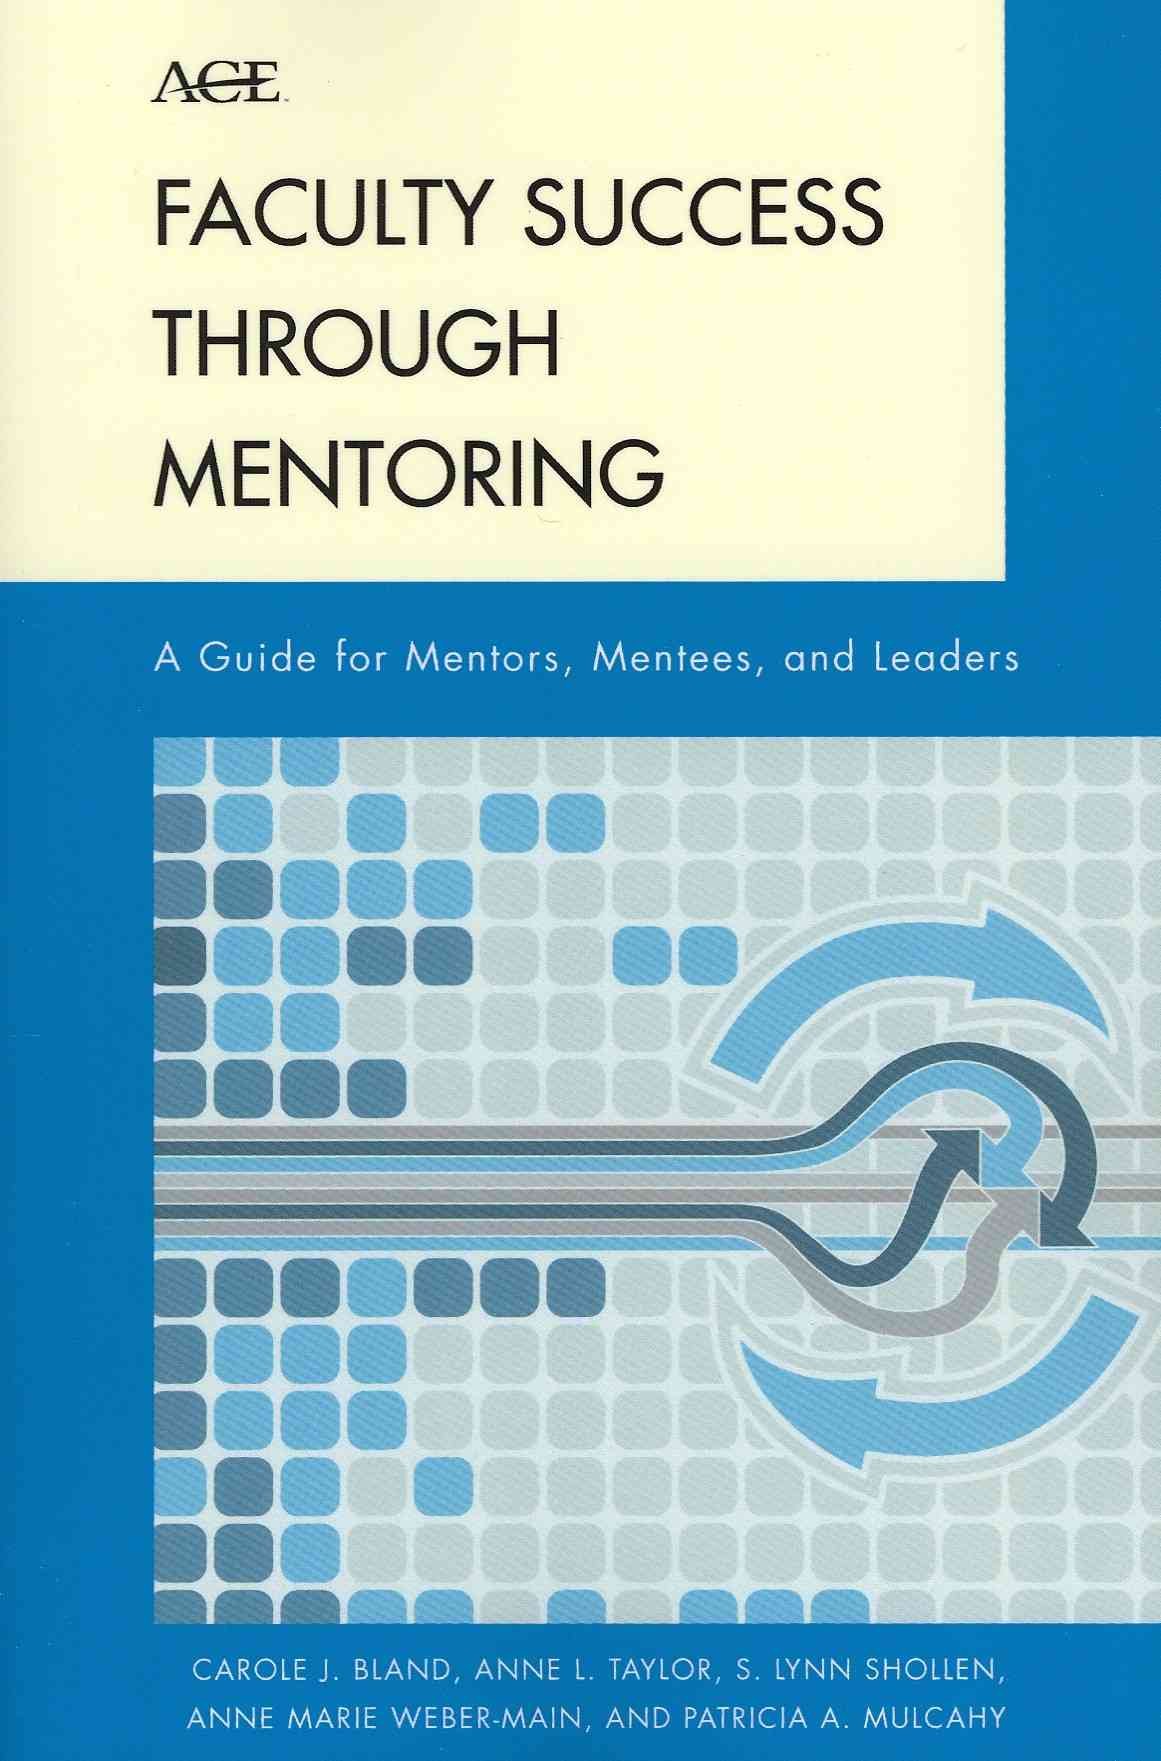 Faculty Success Through Mentoring: A Guide for Mentors, Mentees, and Leaders (Paperback)